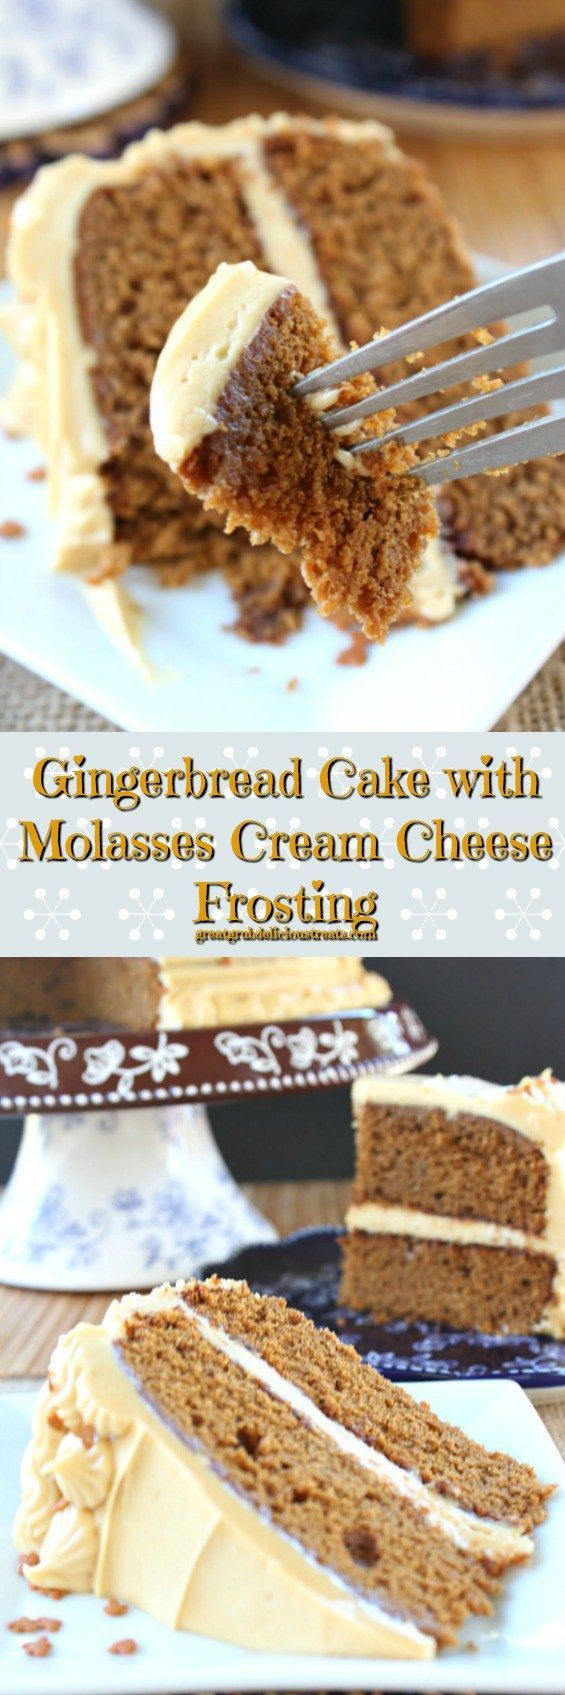 Gingerbread Cake with Molasses Cream Cheese Frosting More